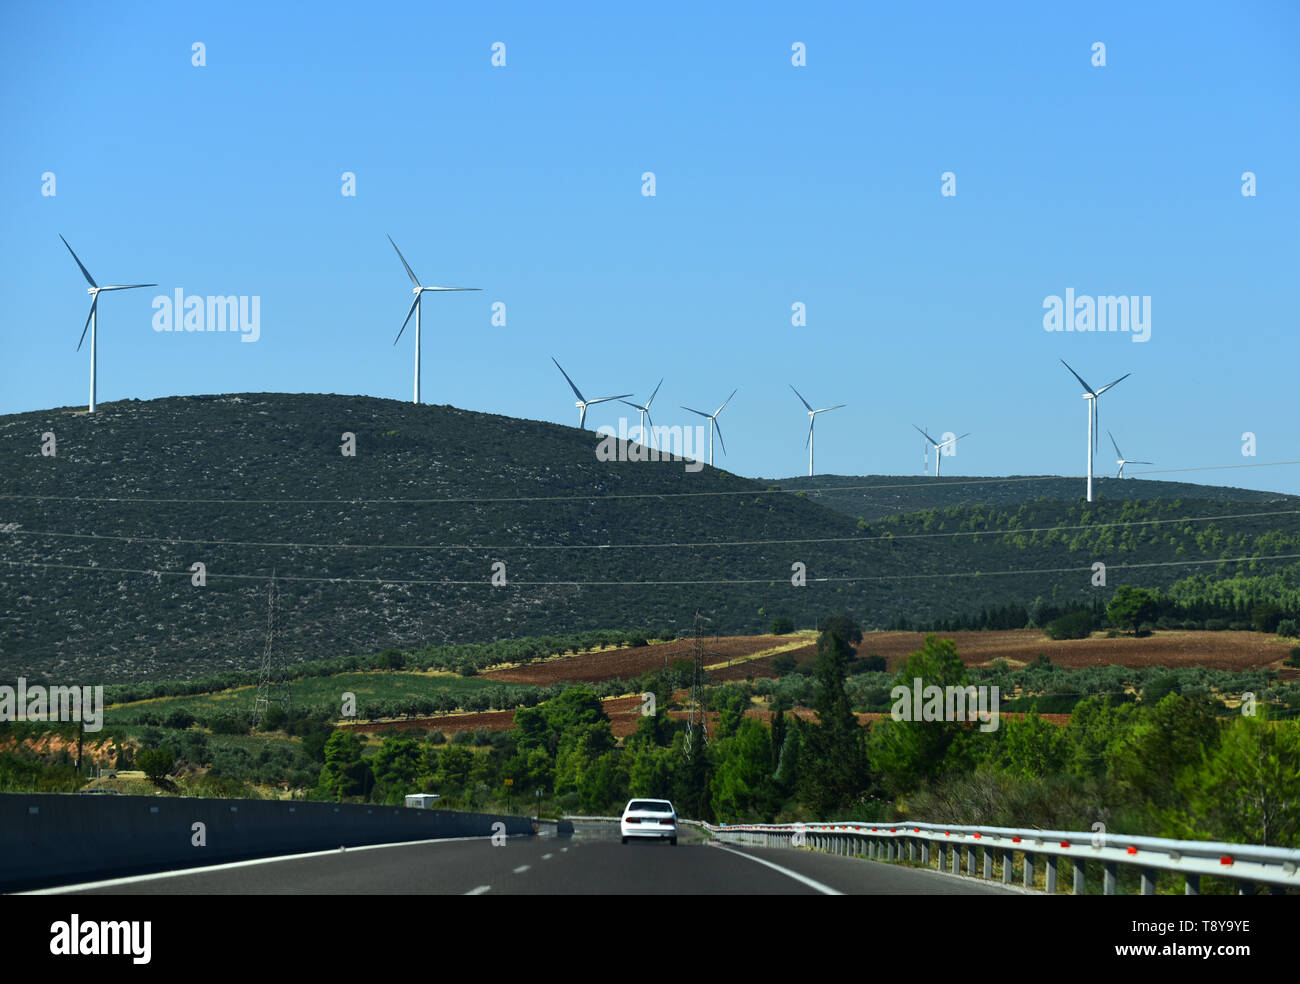 Road on mountain landscape. Asphalt road and wind turbines on blue sky. Direction and destination. Alternative energy sources. Summer vacation - Stock Image